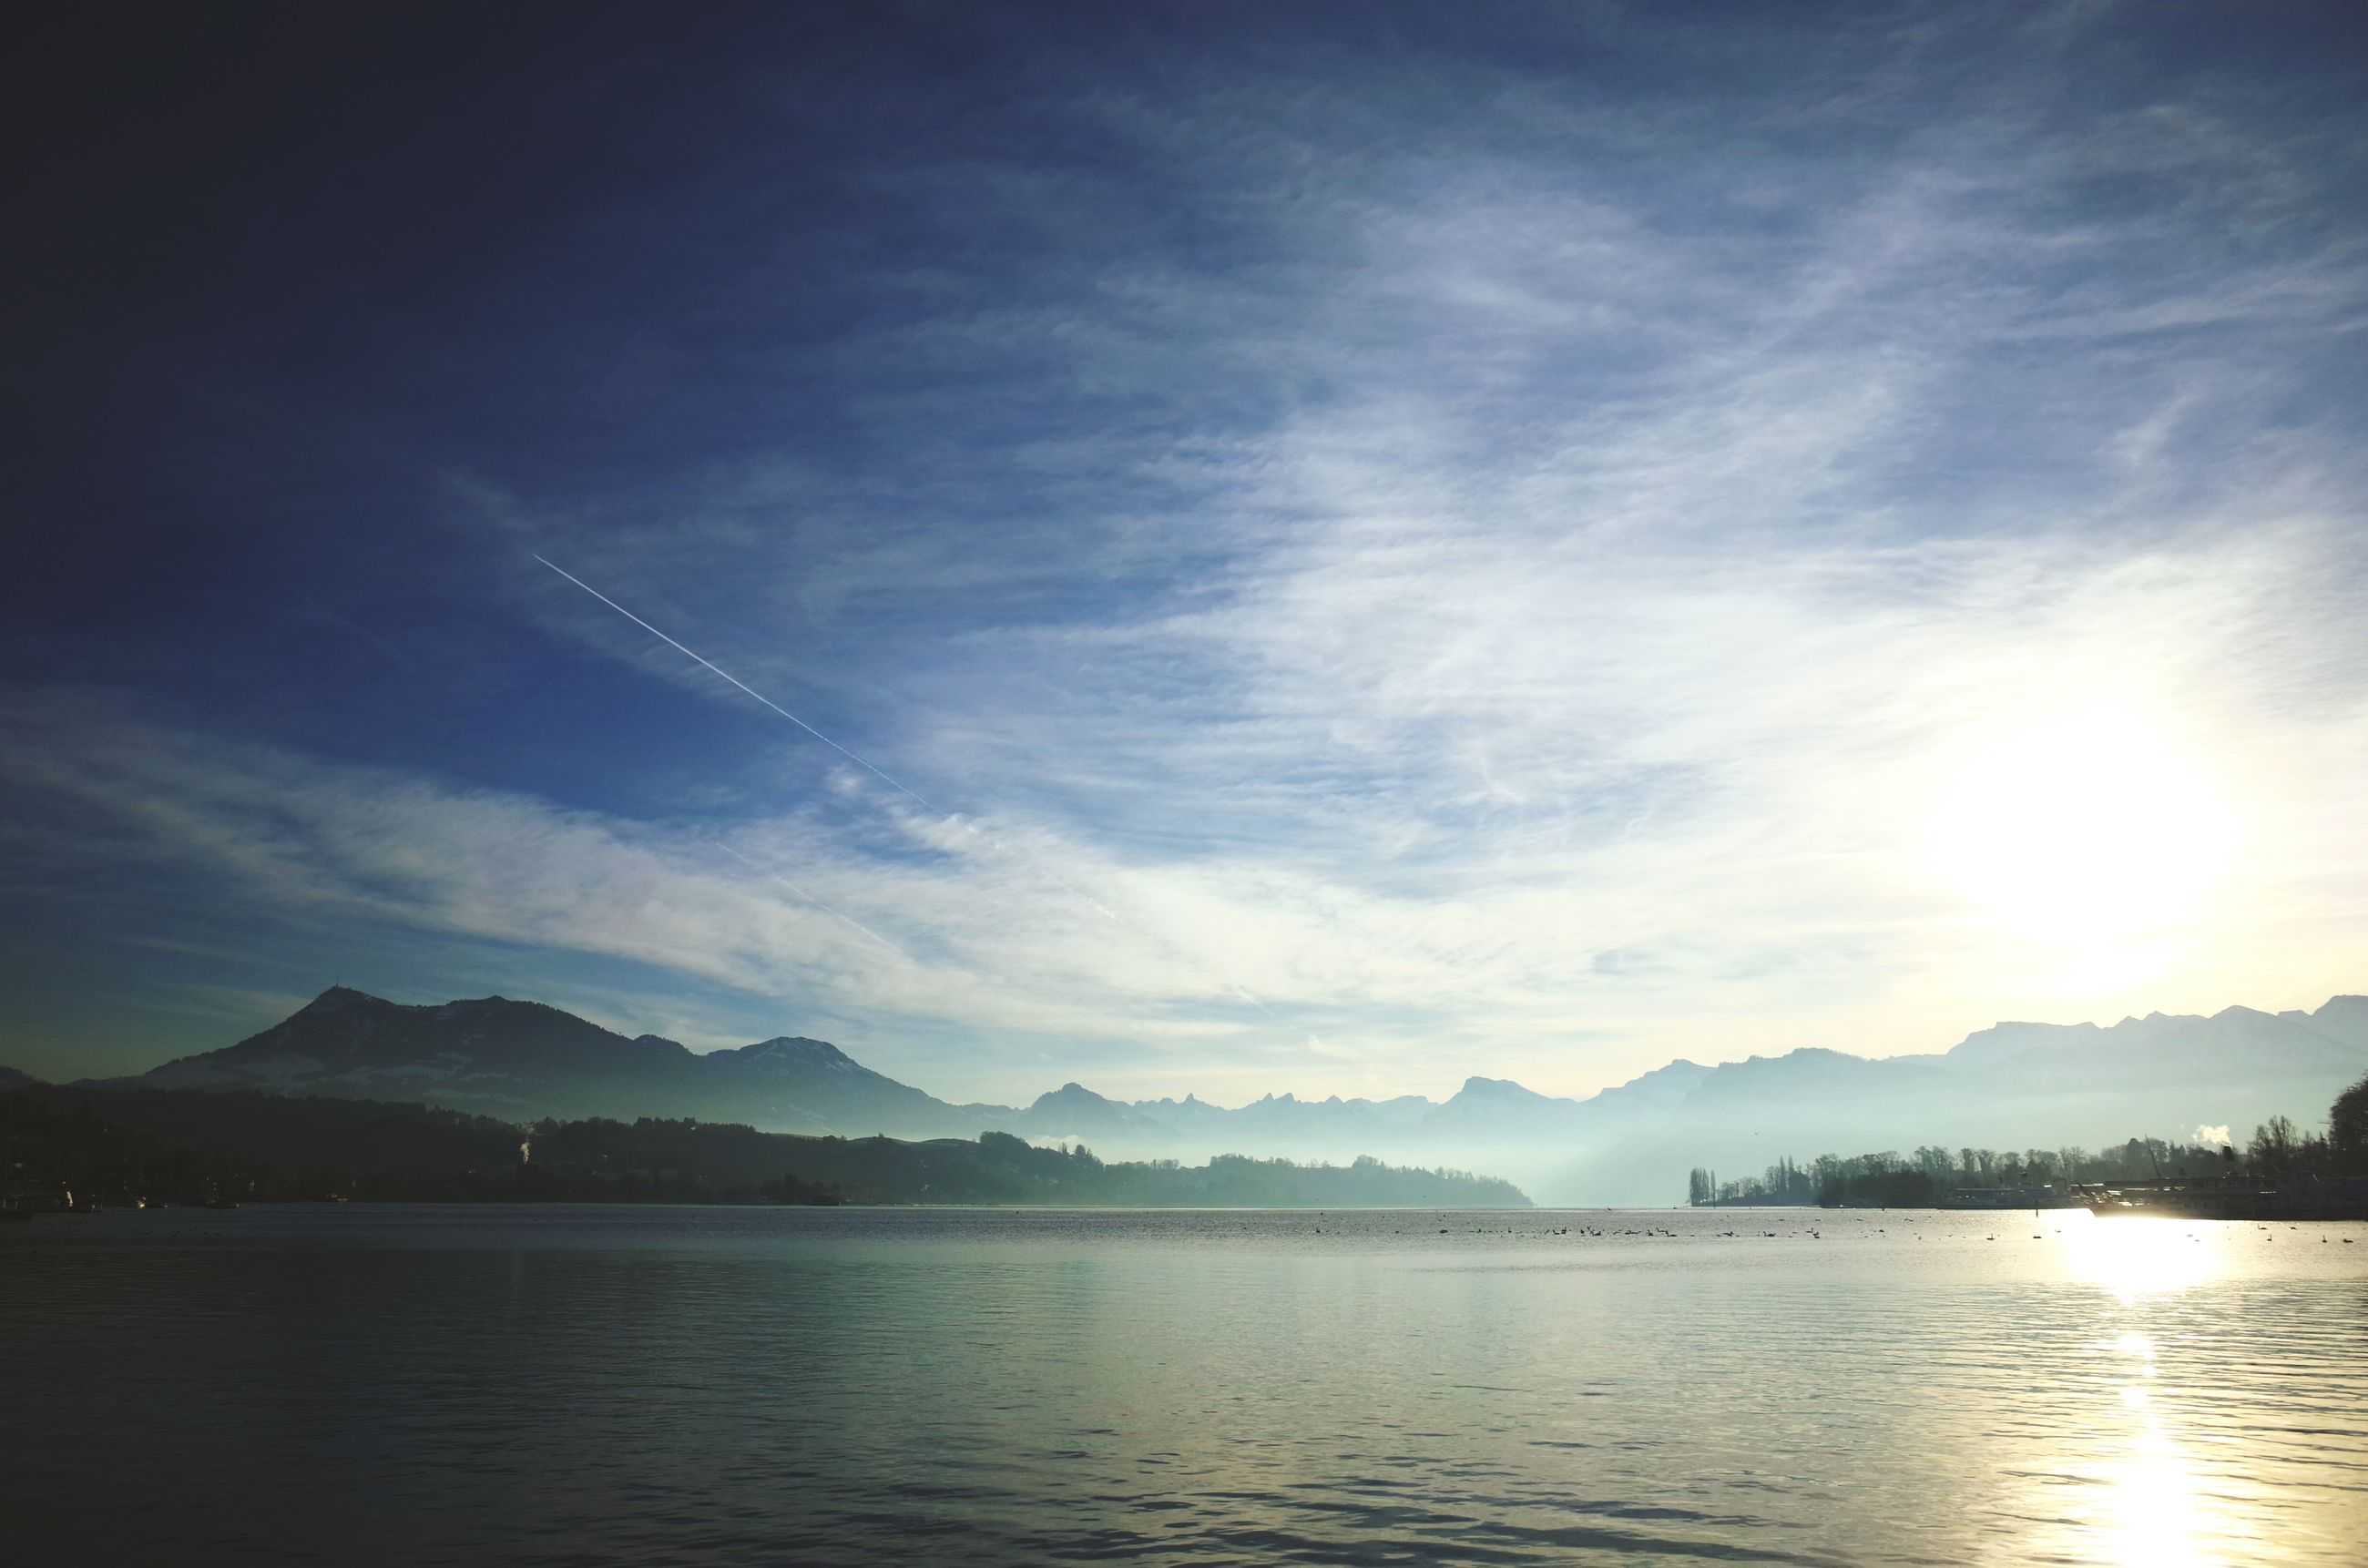 mountain, water, tranquil scene, mountain range, scenics, tranquility, sky, beauty in nature, lake, waterfront, cloud - sky, nature, reflection, idyllic, cloud, river, sea, non-urban scene, sunset, outdoors